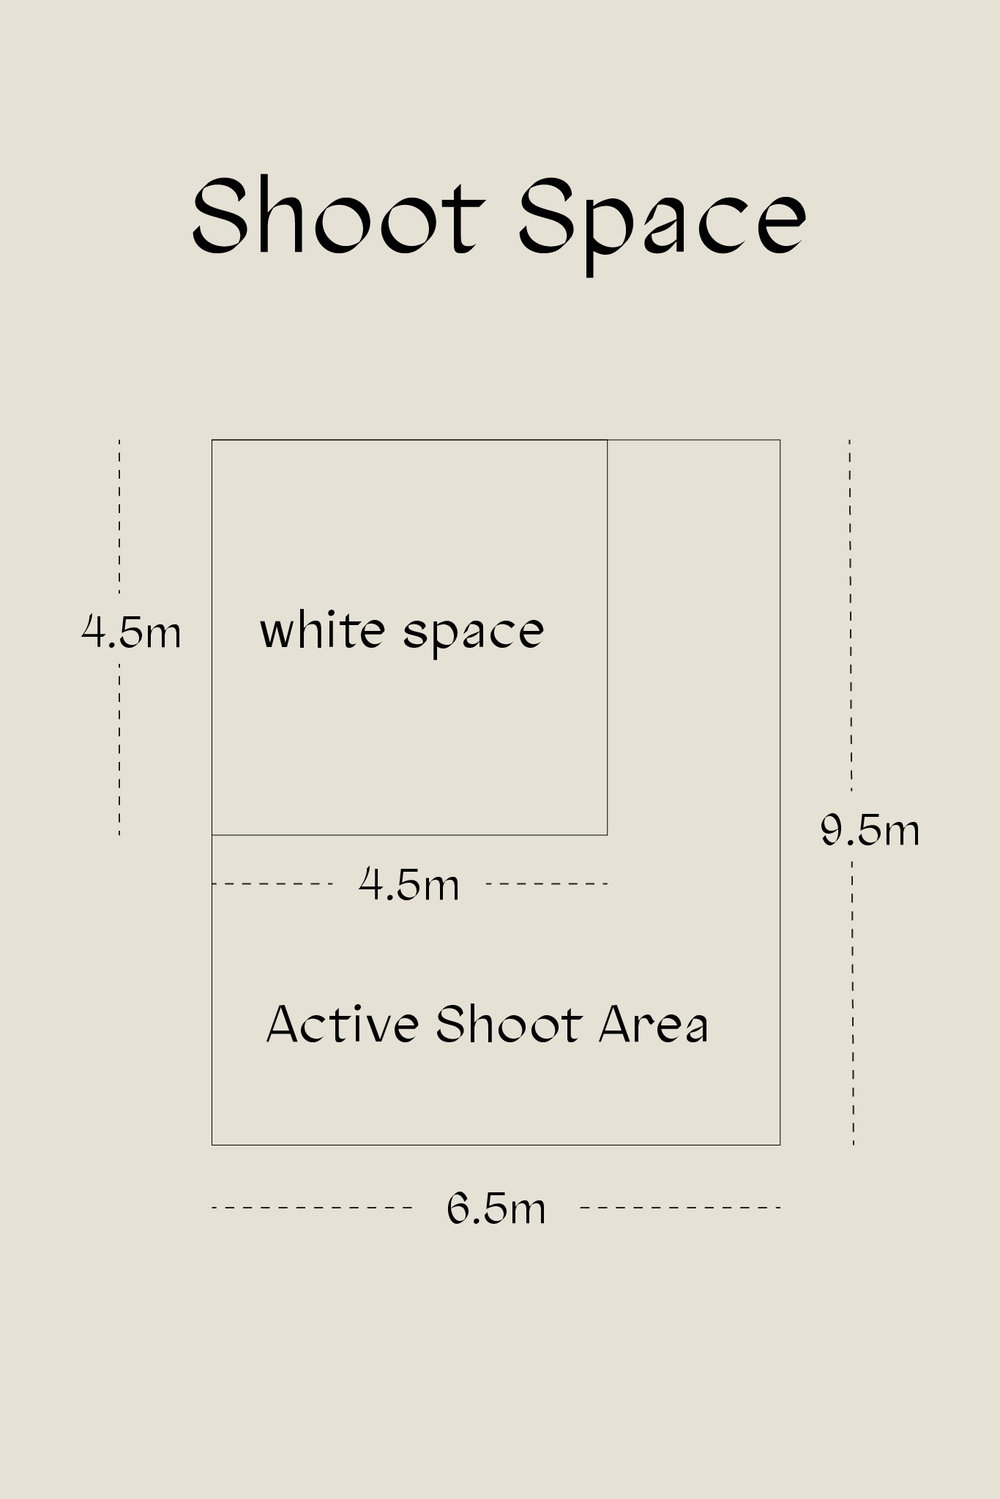 Shoot Space Map.jpg